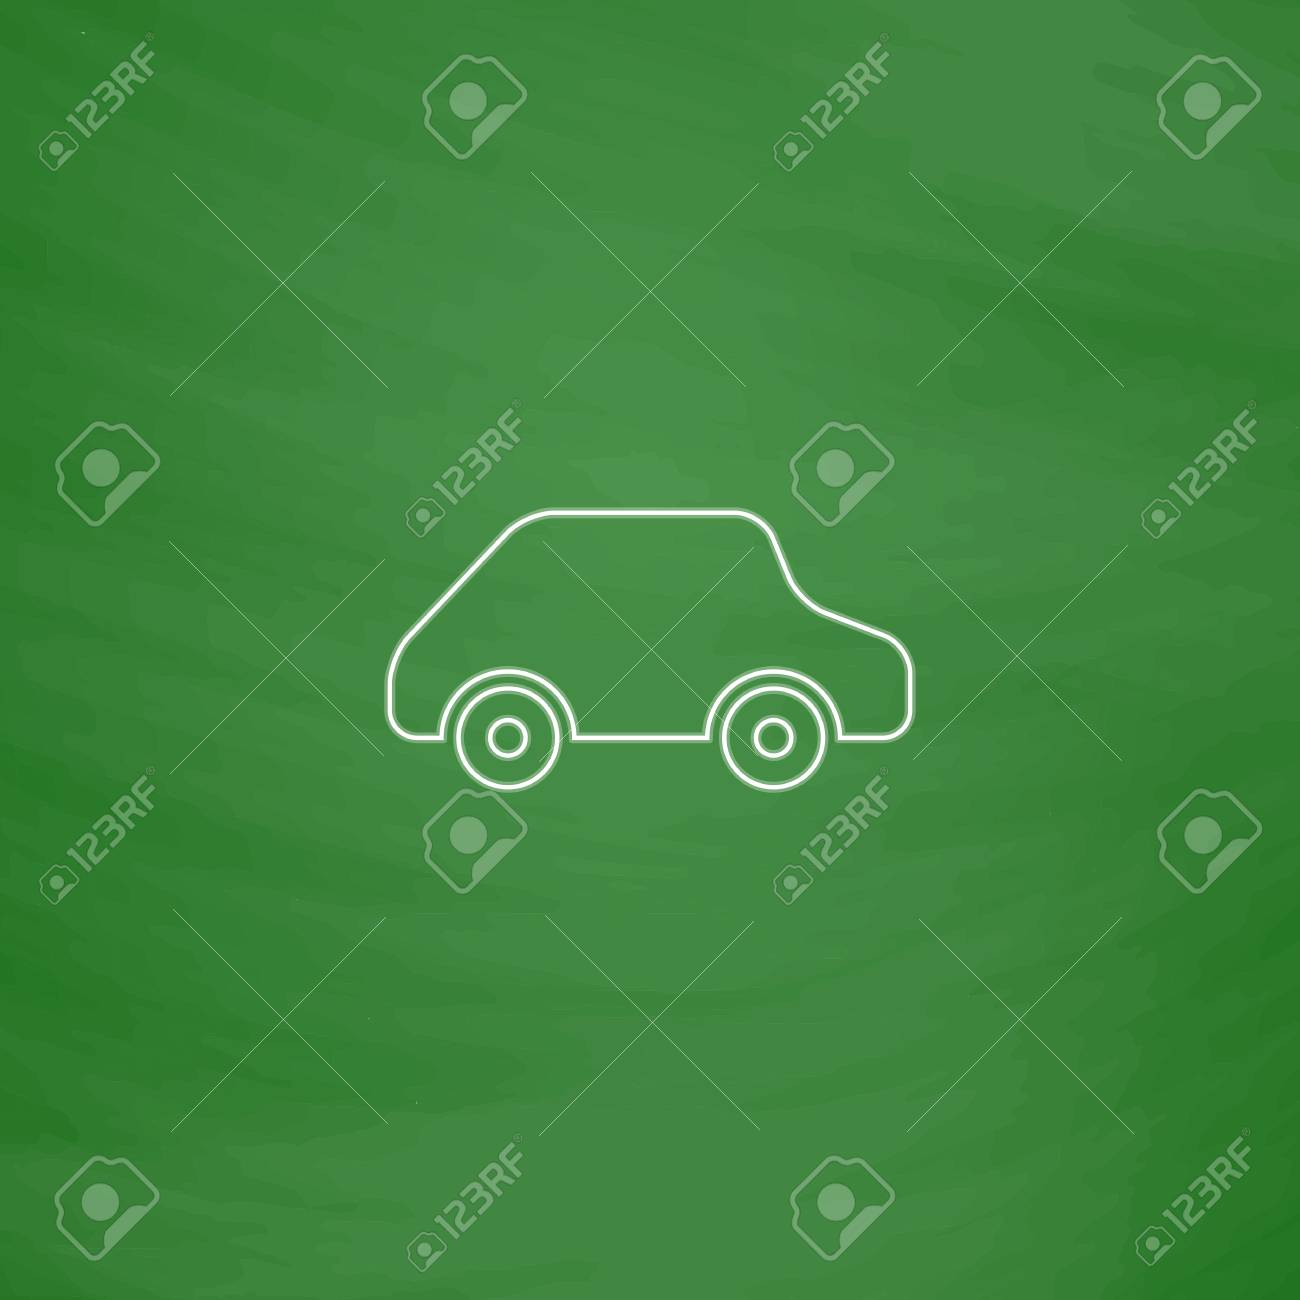 toy car outline vector icon imitation draw with white chalk